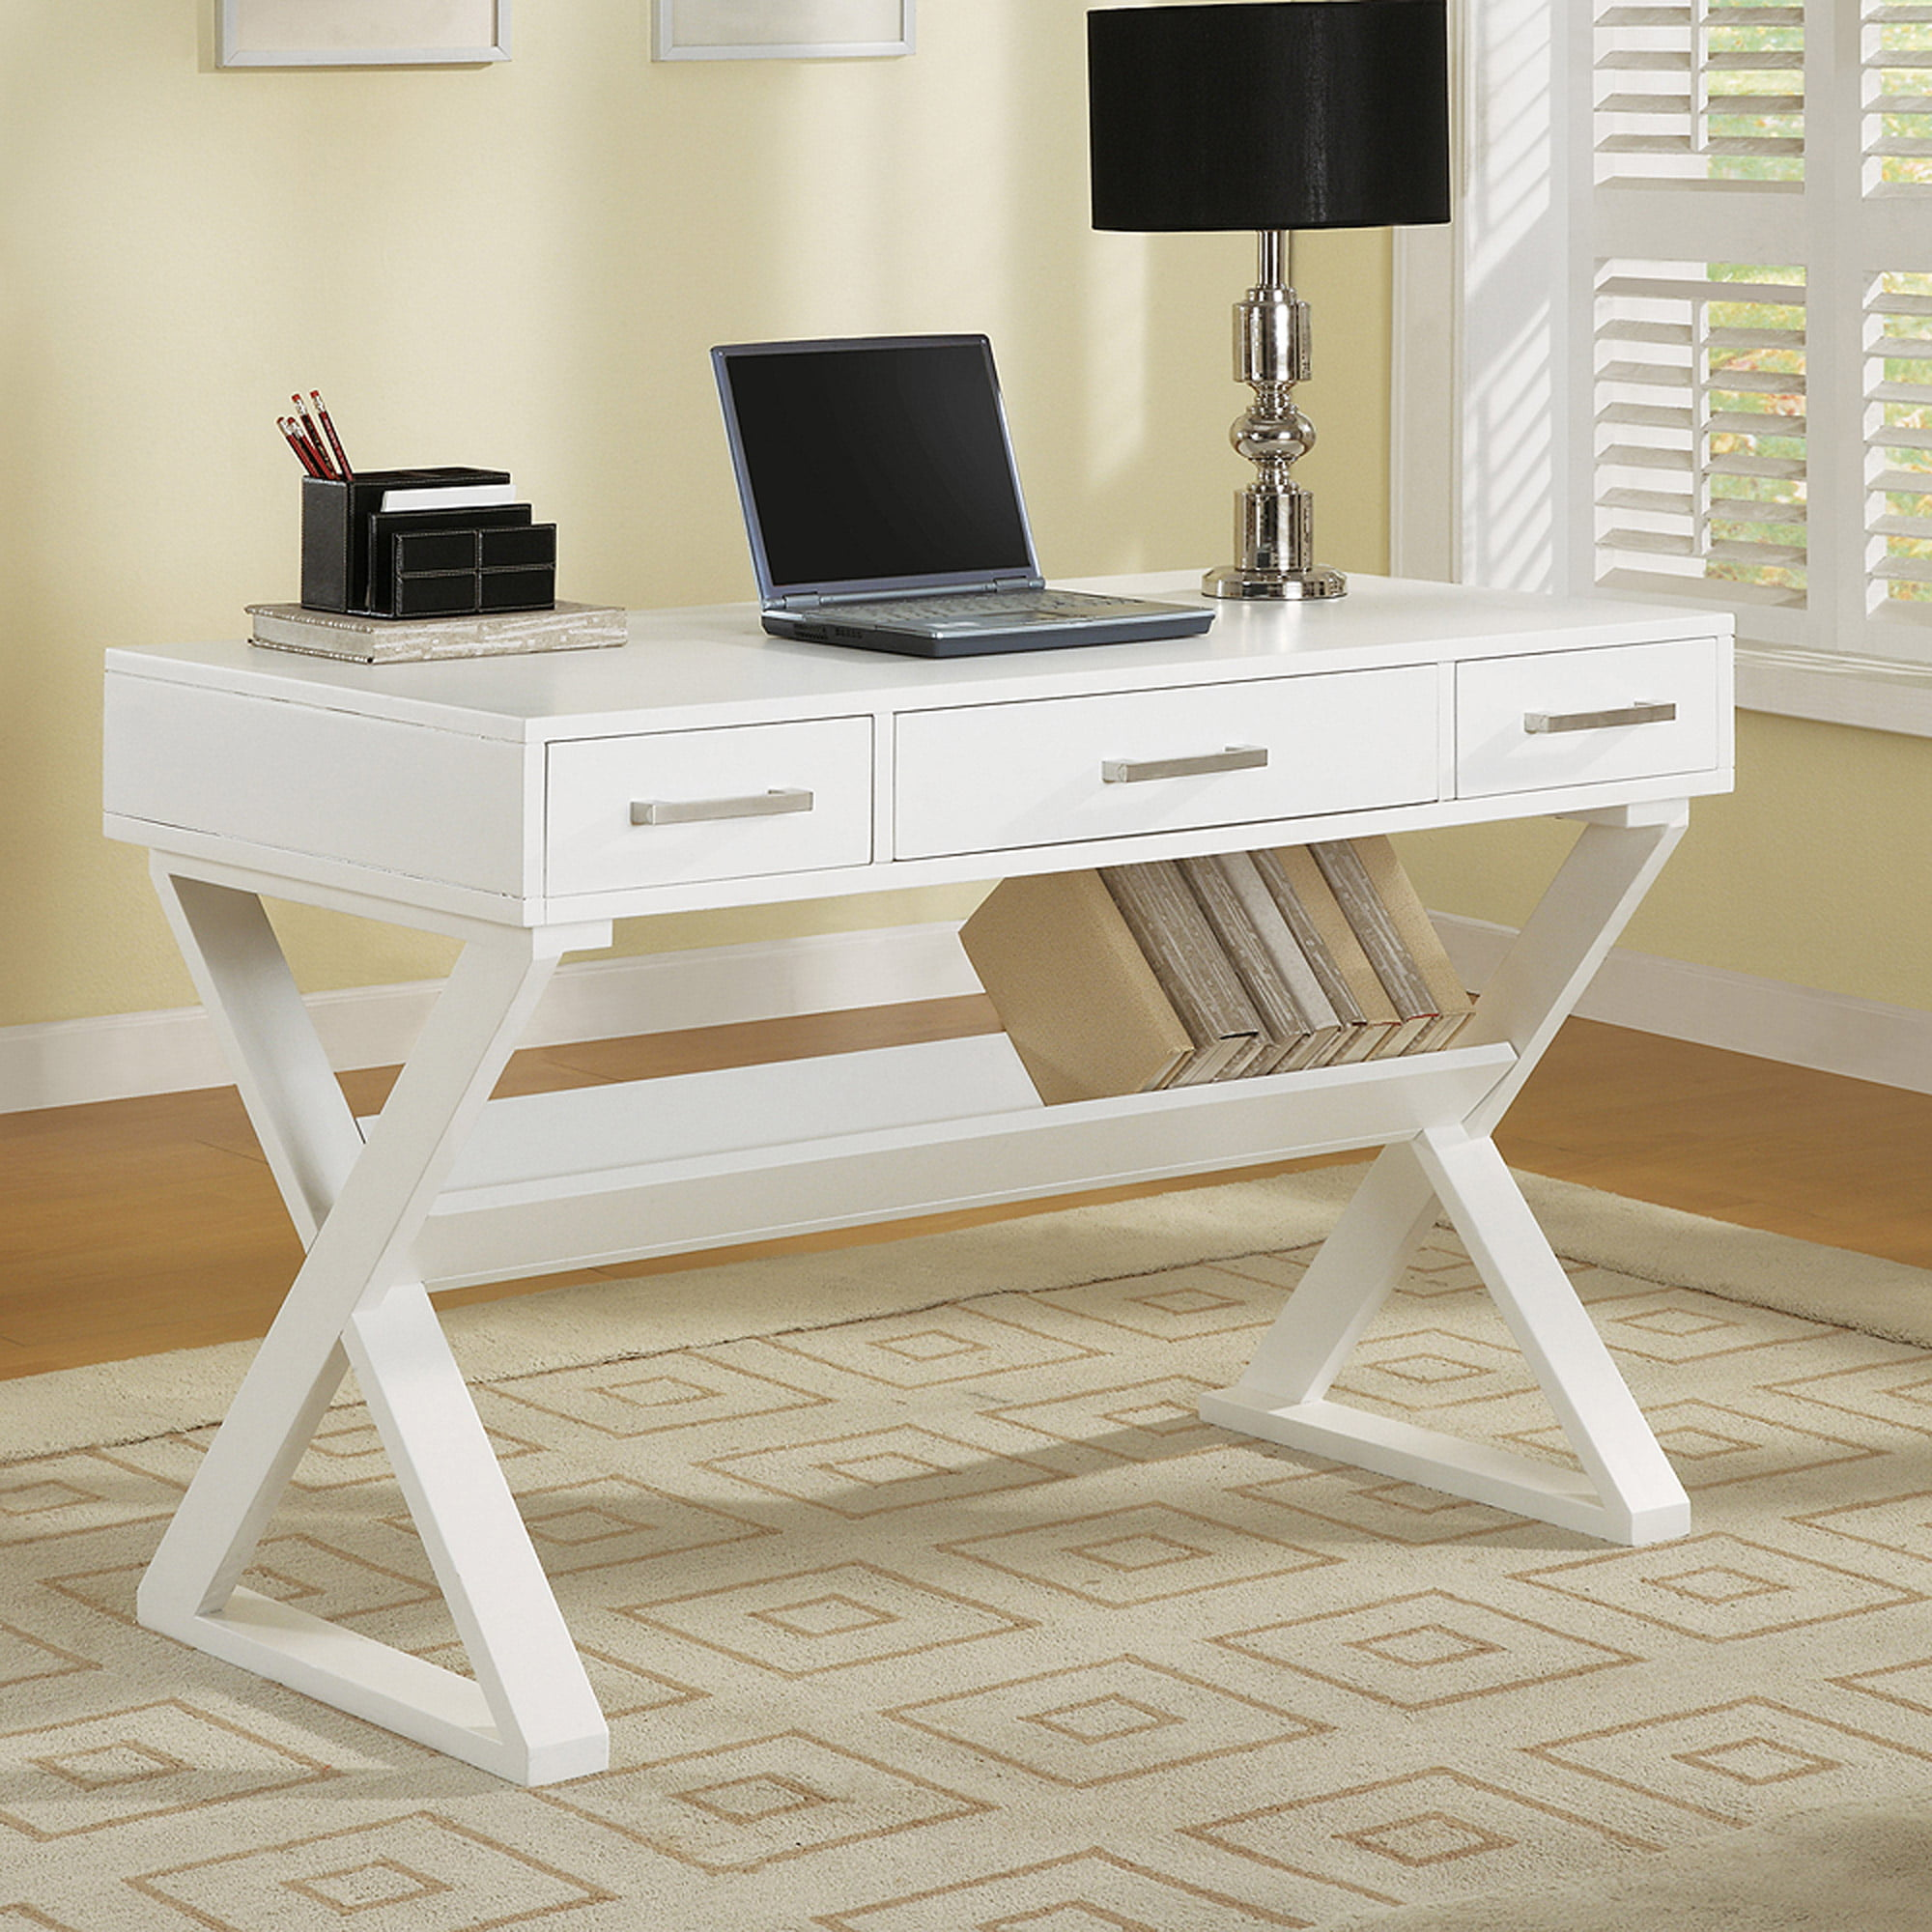 Coaster Company Contemporary Computer Desk, White   Walmart.com